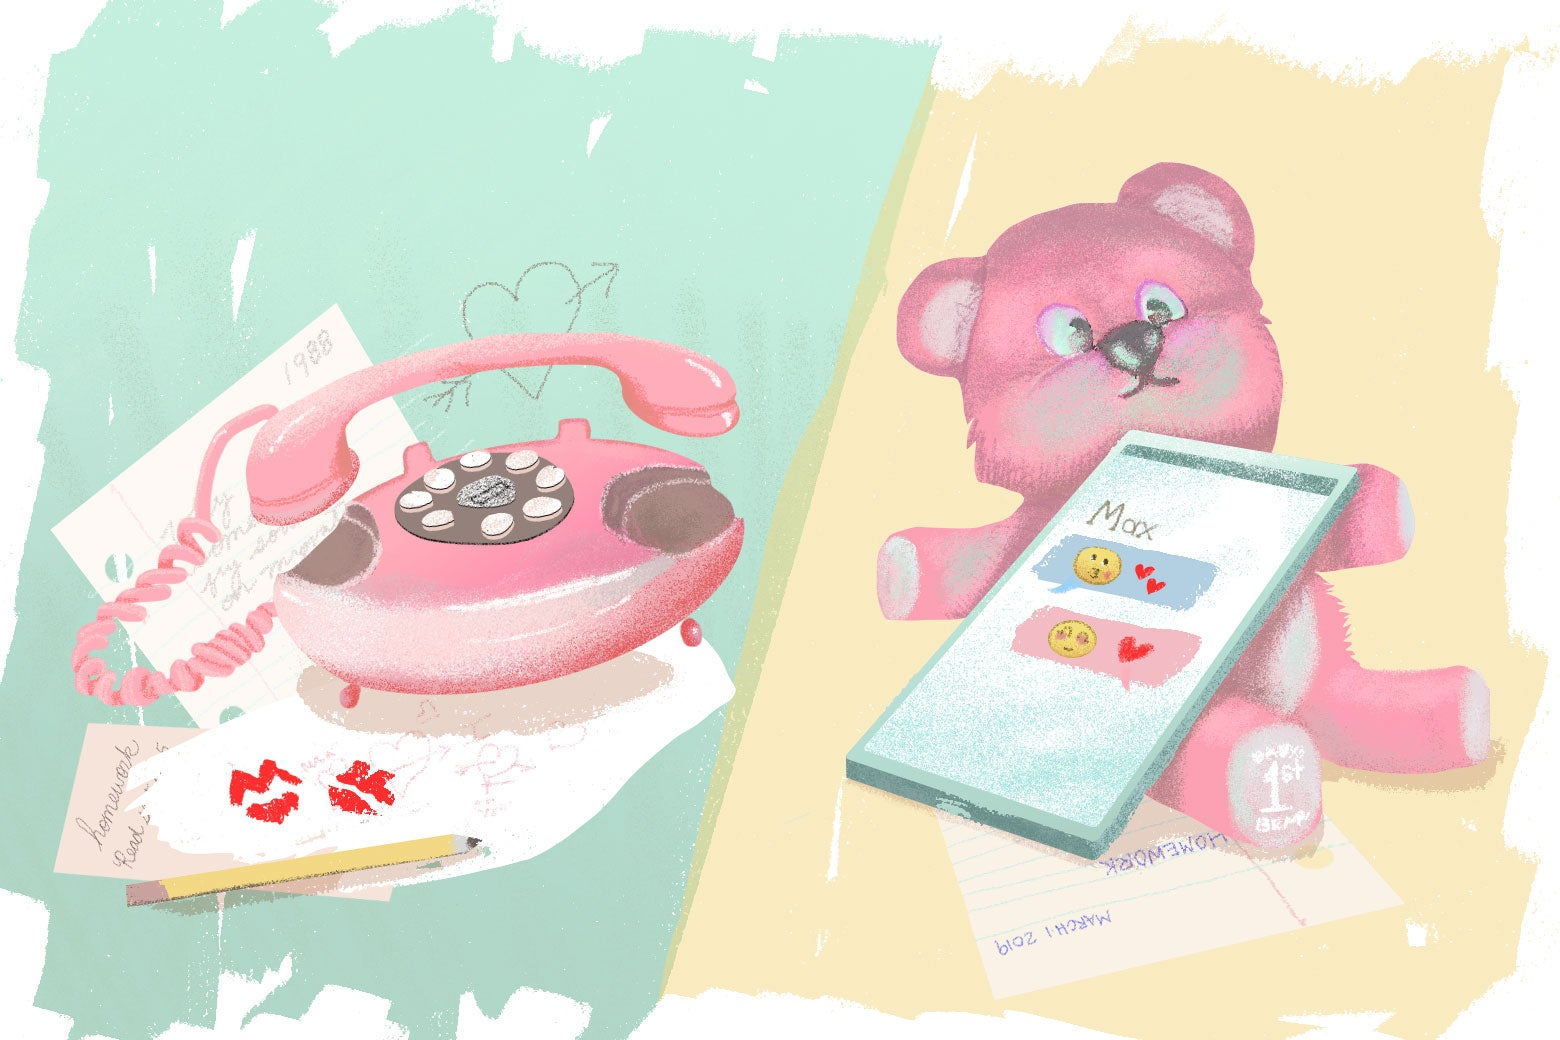 A telephone with written notes and a pencil scattered by the side, and a teddy bear showing texts exchanged with a boy named Max